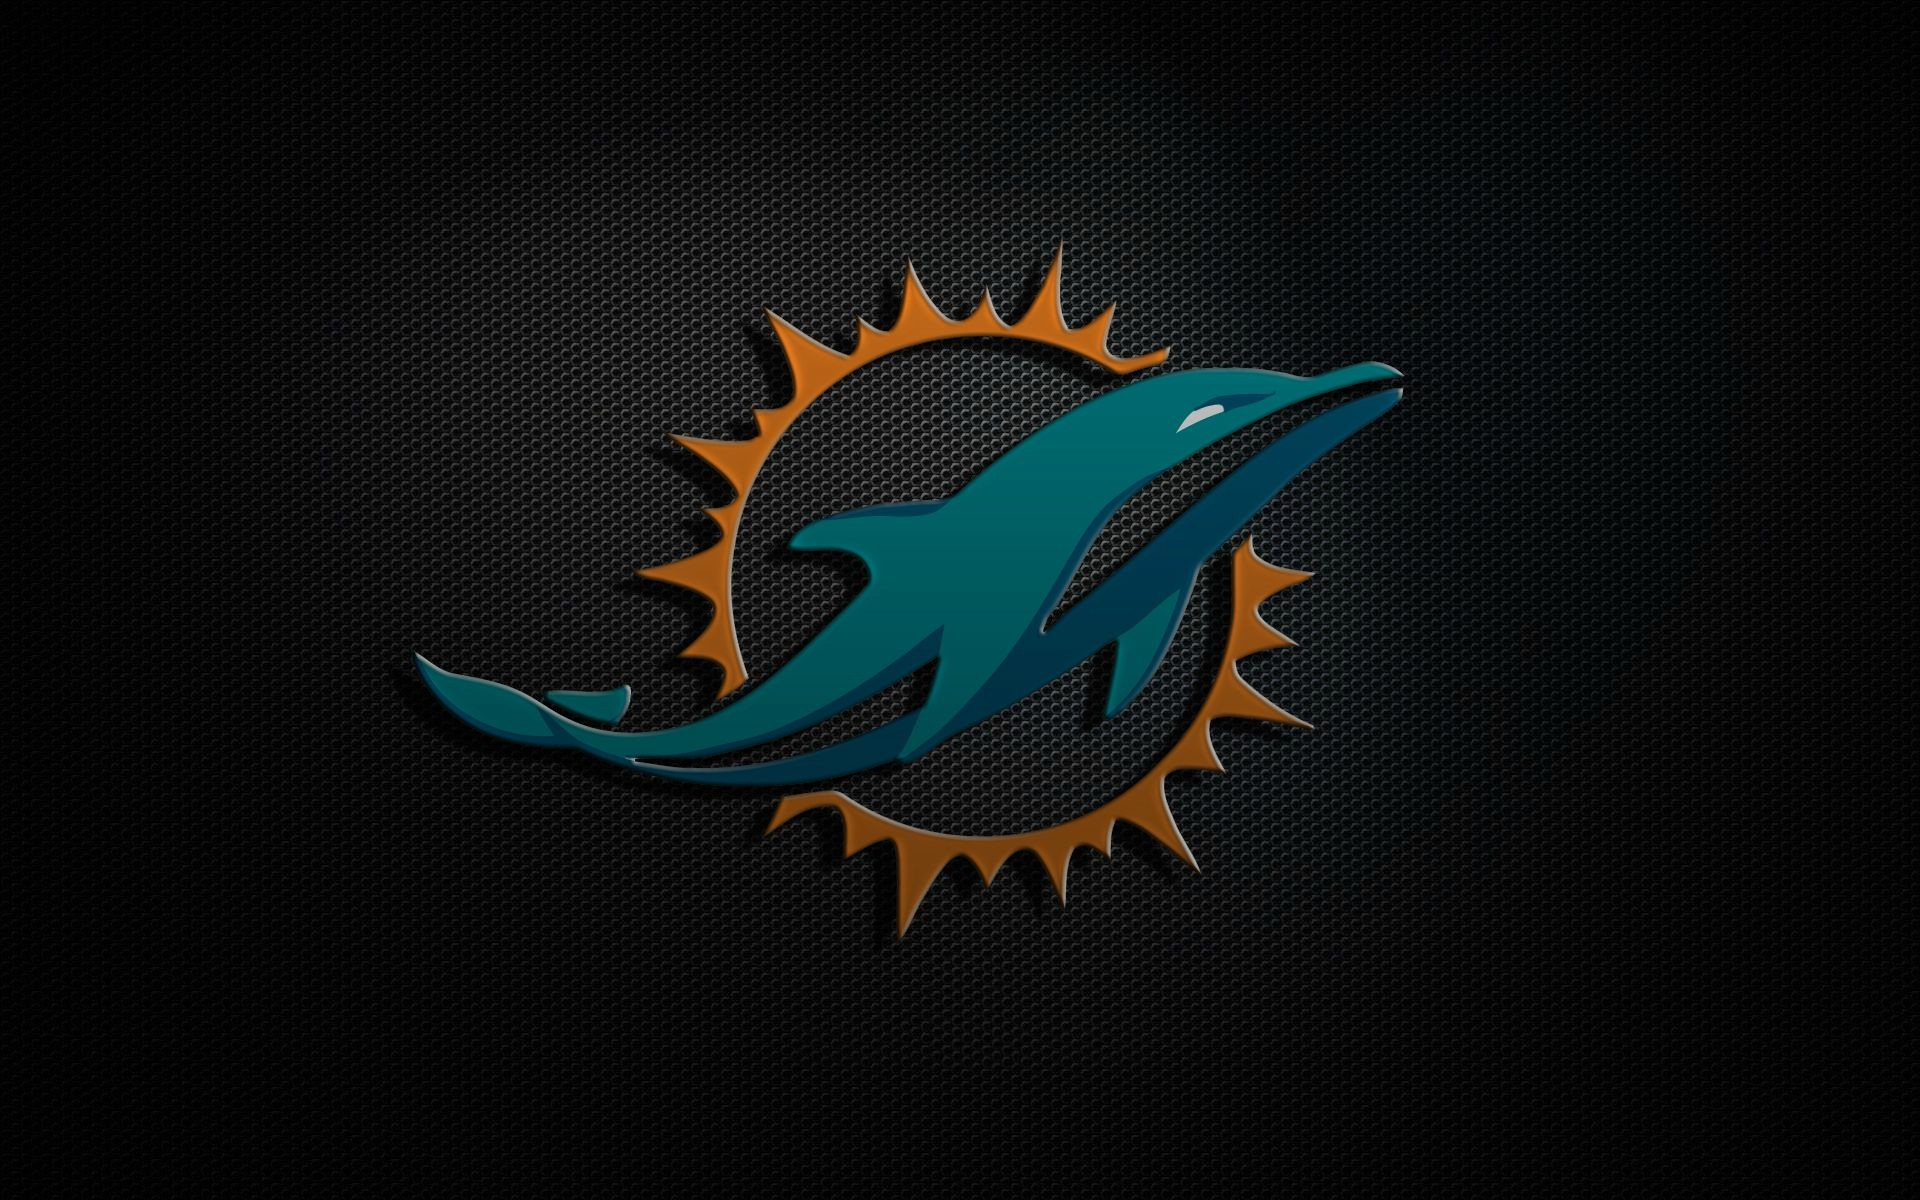 miami dolphins nfl wallpaper share this nfl team wallpaper on facebook